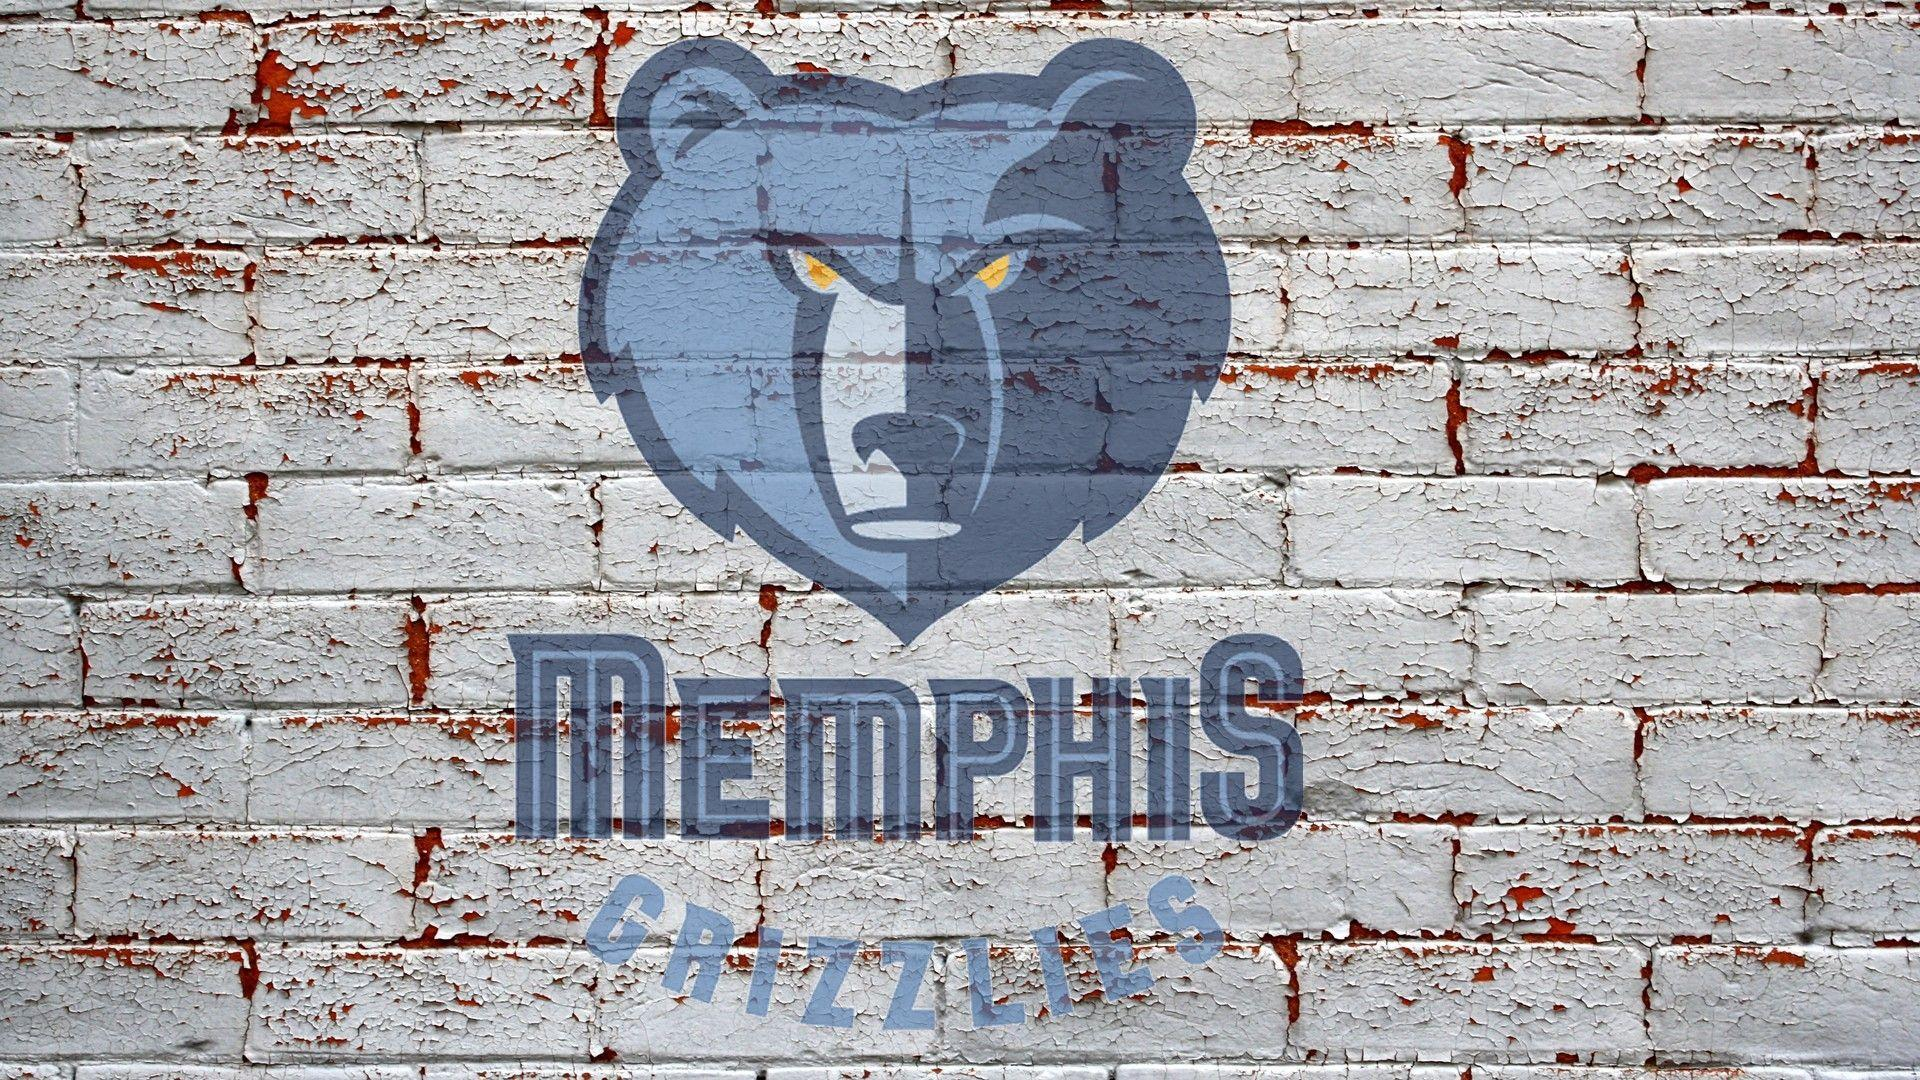 MEMPHIS GRIZZLIES nba basketball (9) wallpaper | 1920x1080 ...